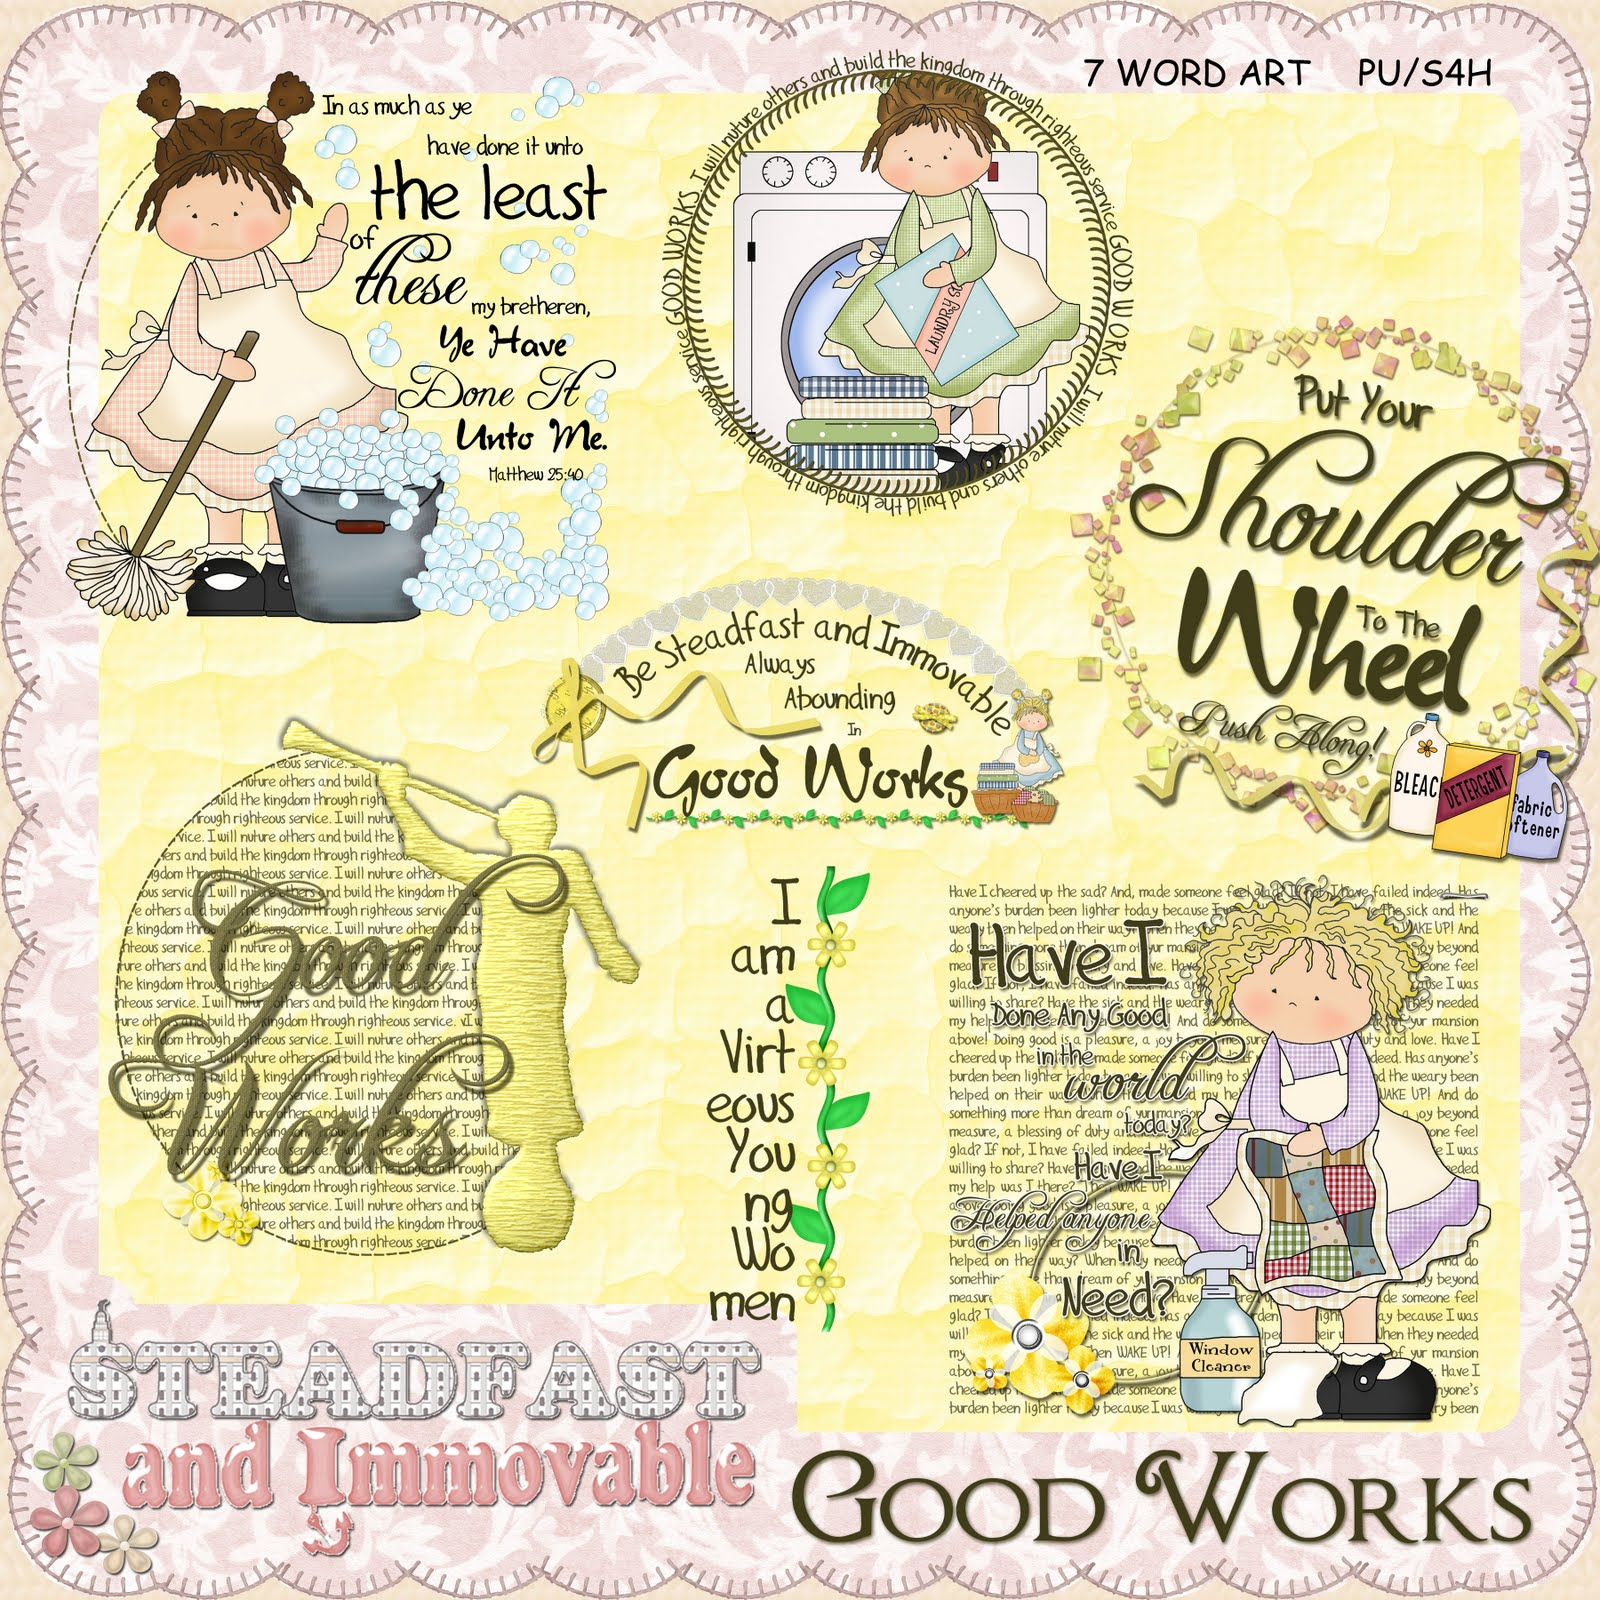 Good Morning Monday Images Good works bb page 9 freebie!